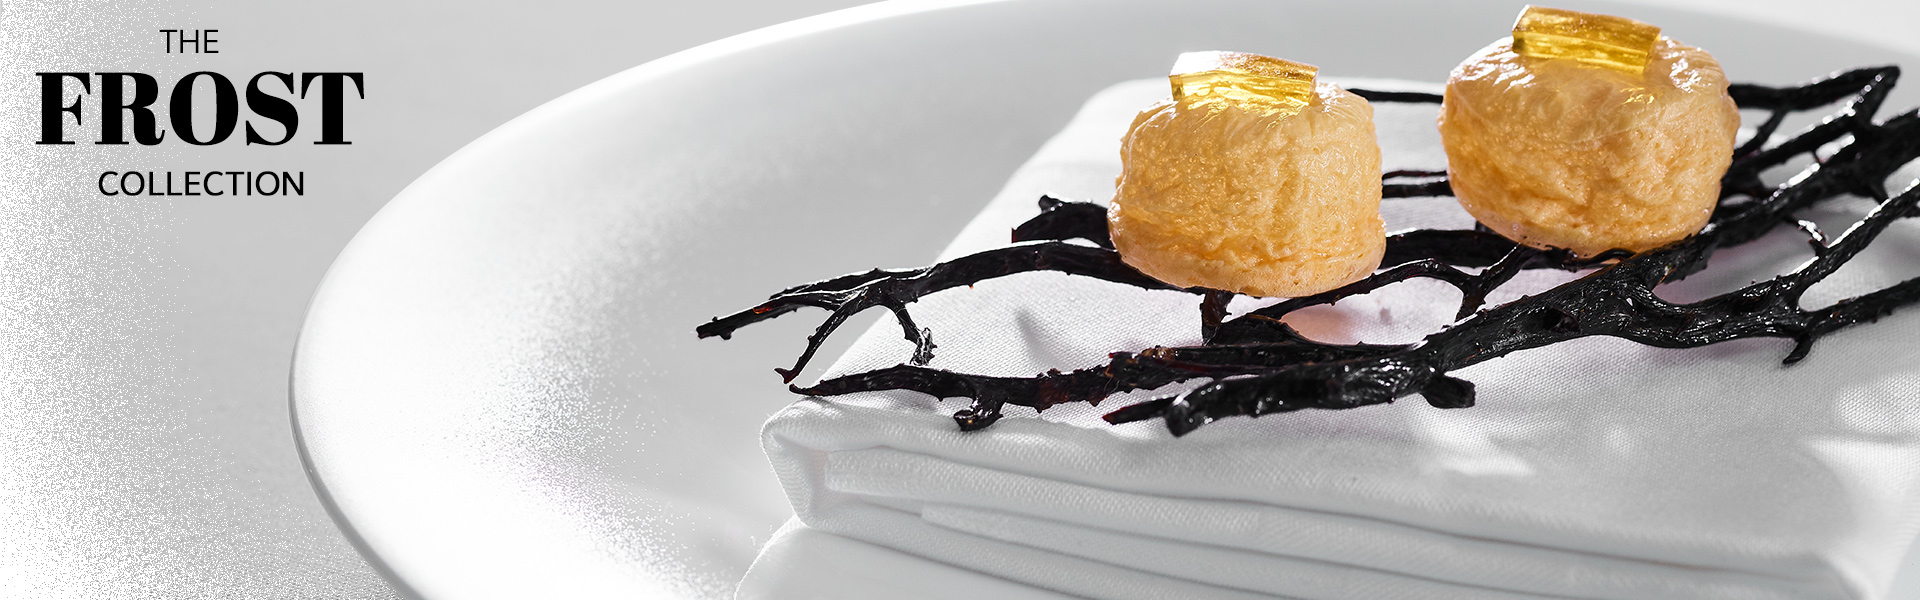 snipe frost tableware with food